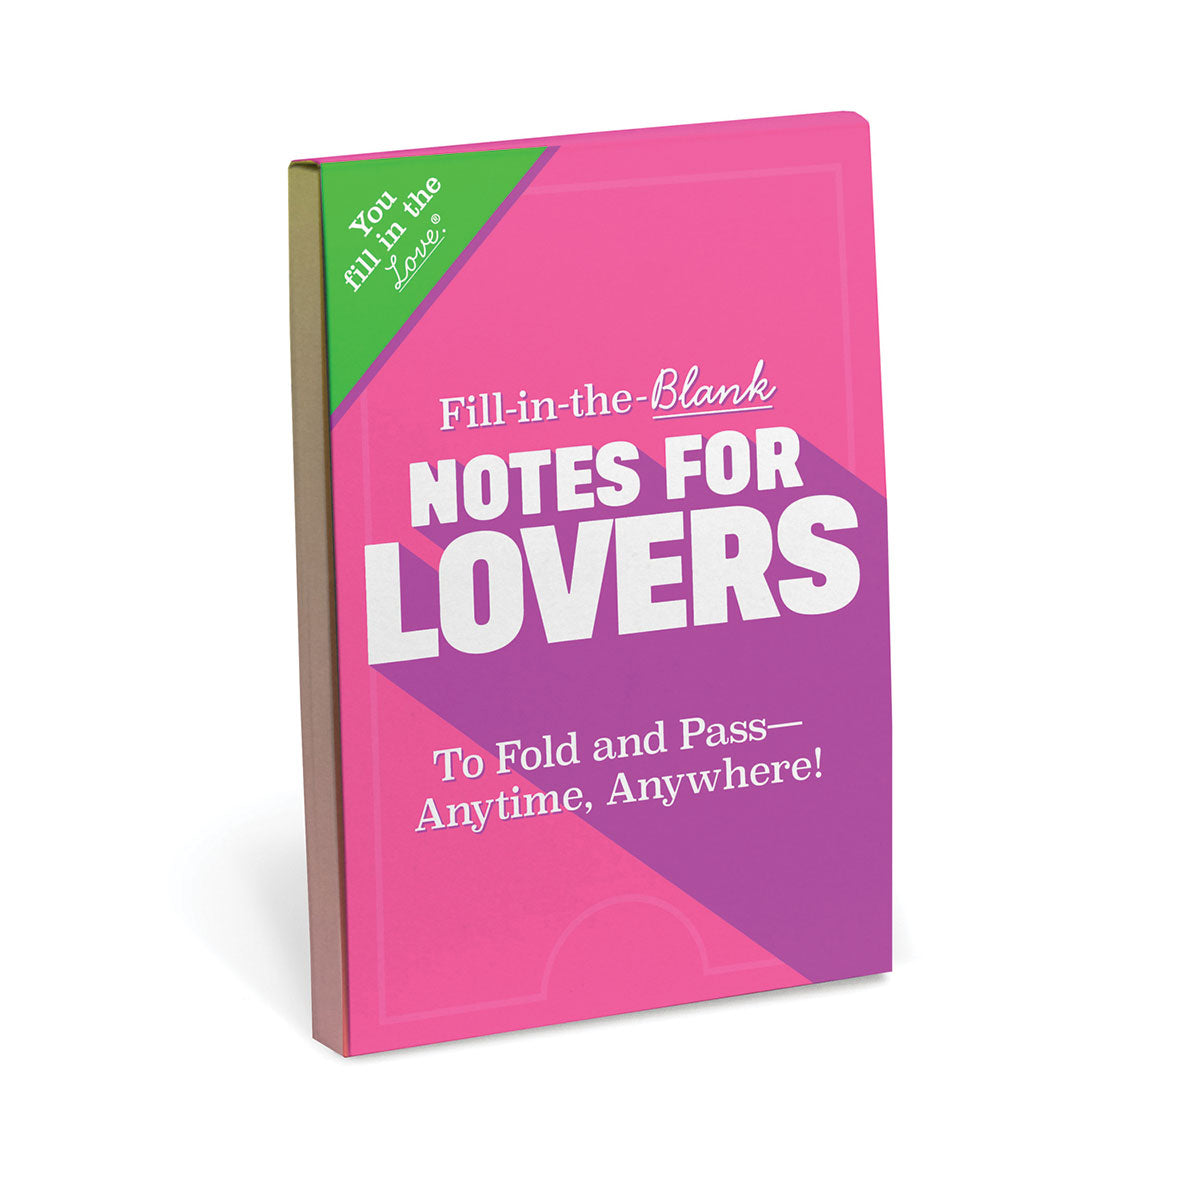 Knock Knock Notes For Lovers Fill-in-the-Blank